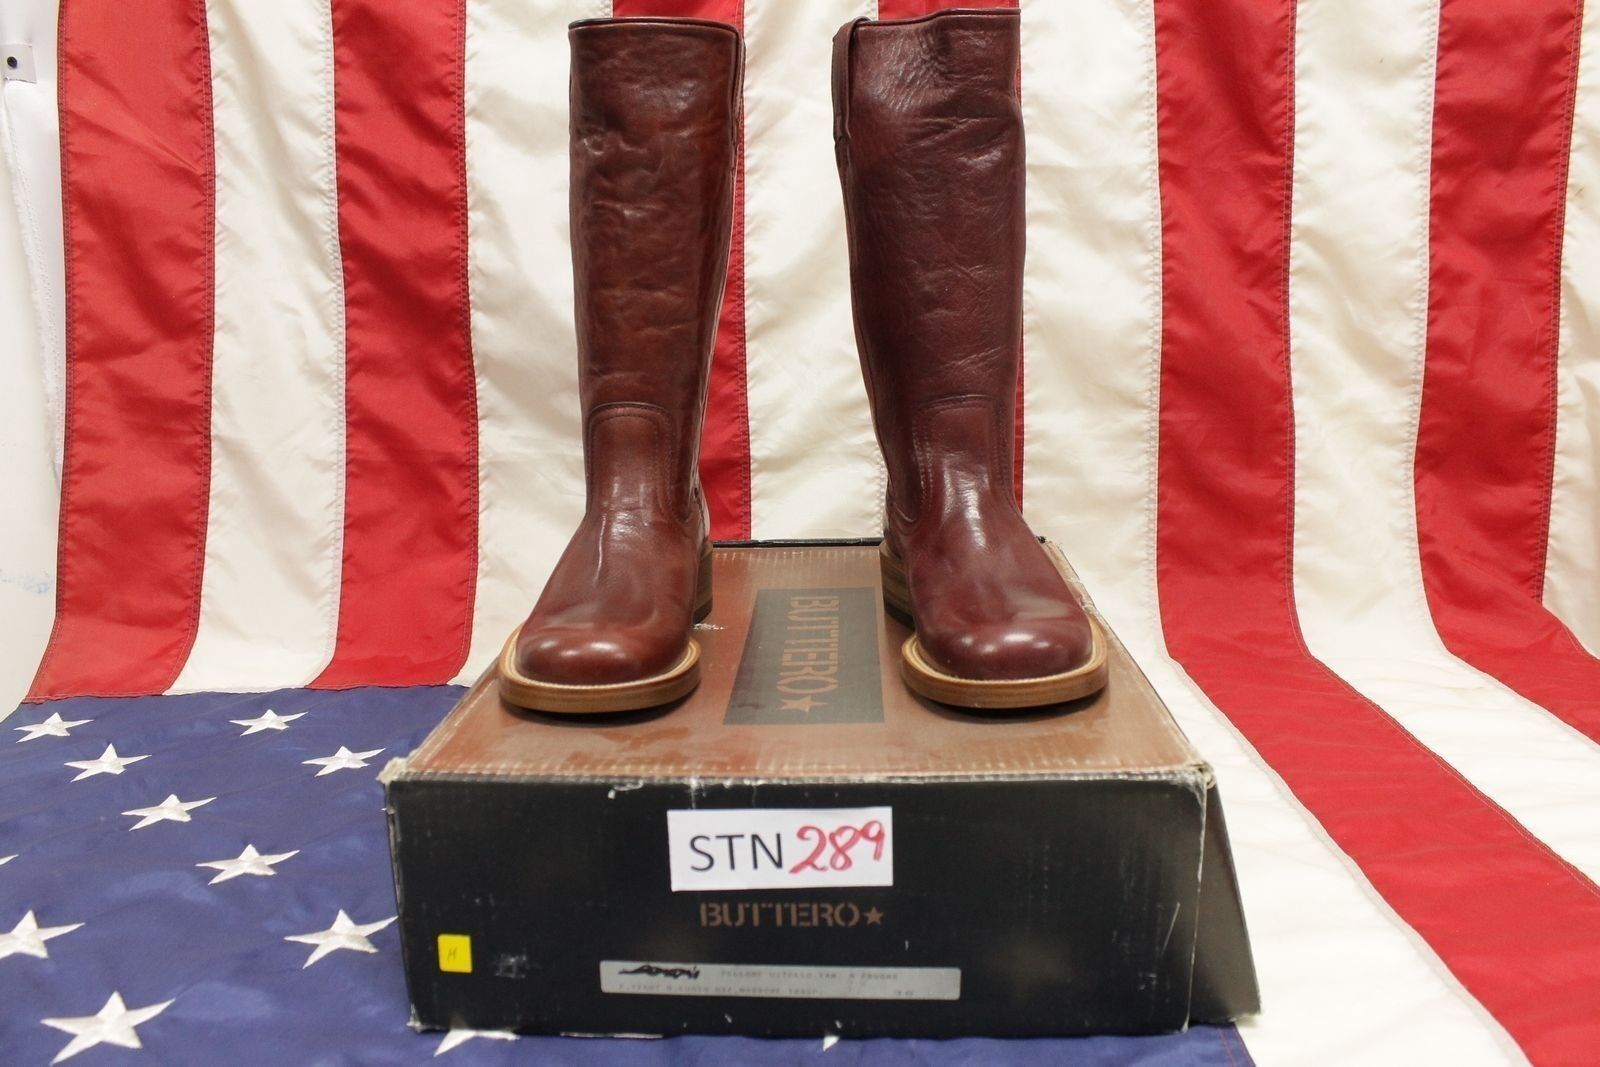 Boots Boots N.36 Buttero (Cod.stn289) Cowboy Western Bikers Woman New